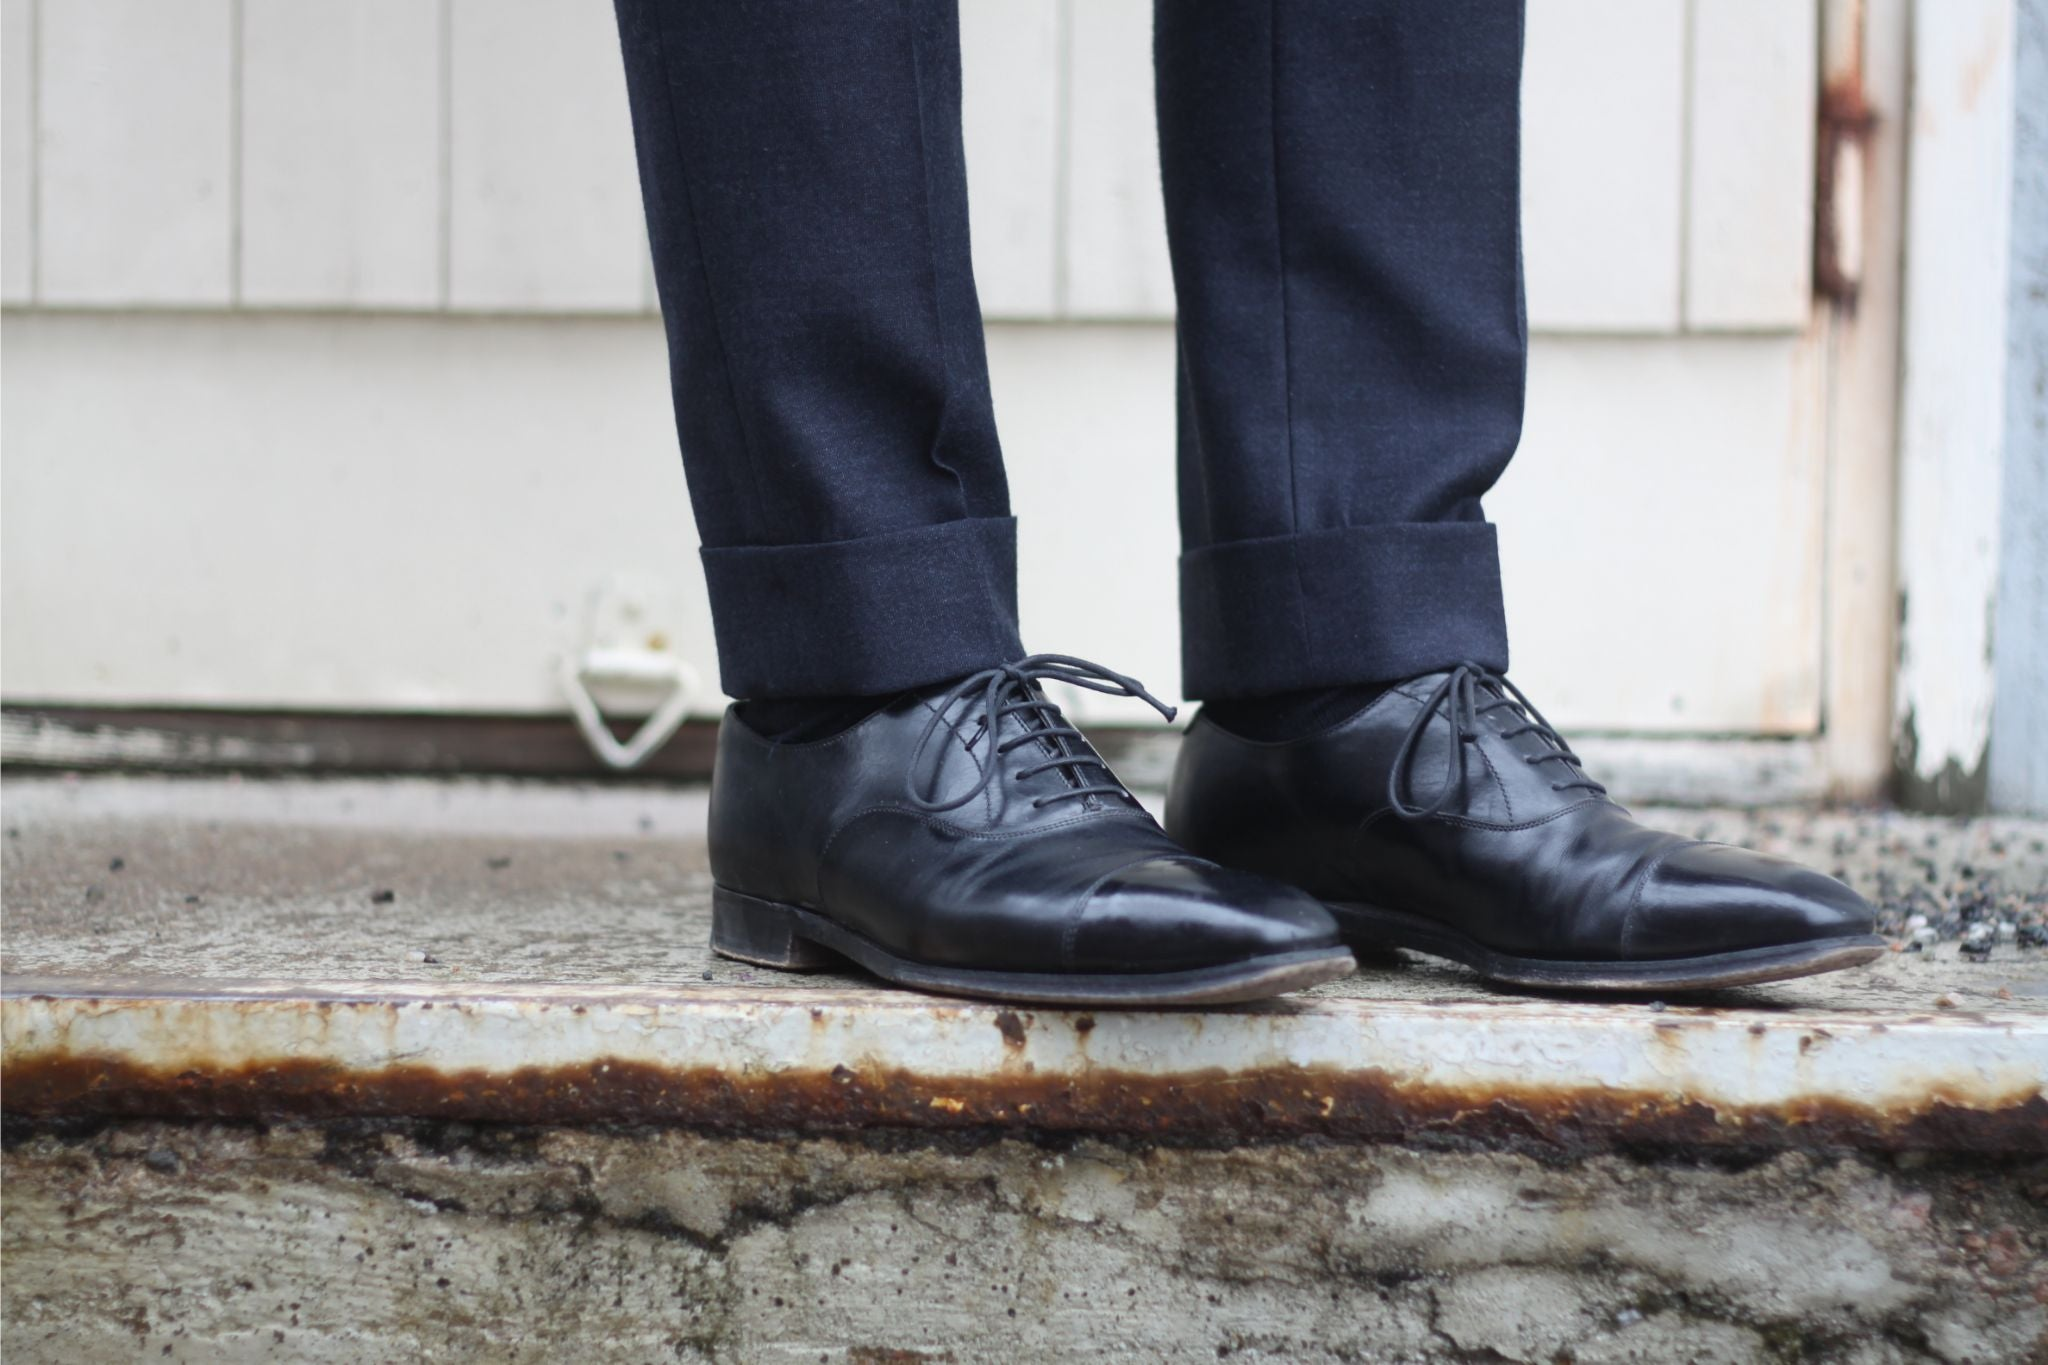 DLA black shoes guide - cap-toe oxfords with gray business suit